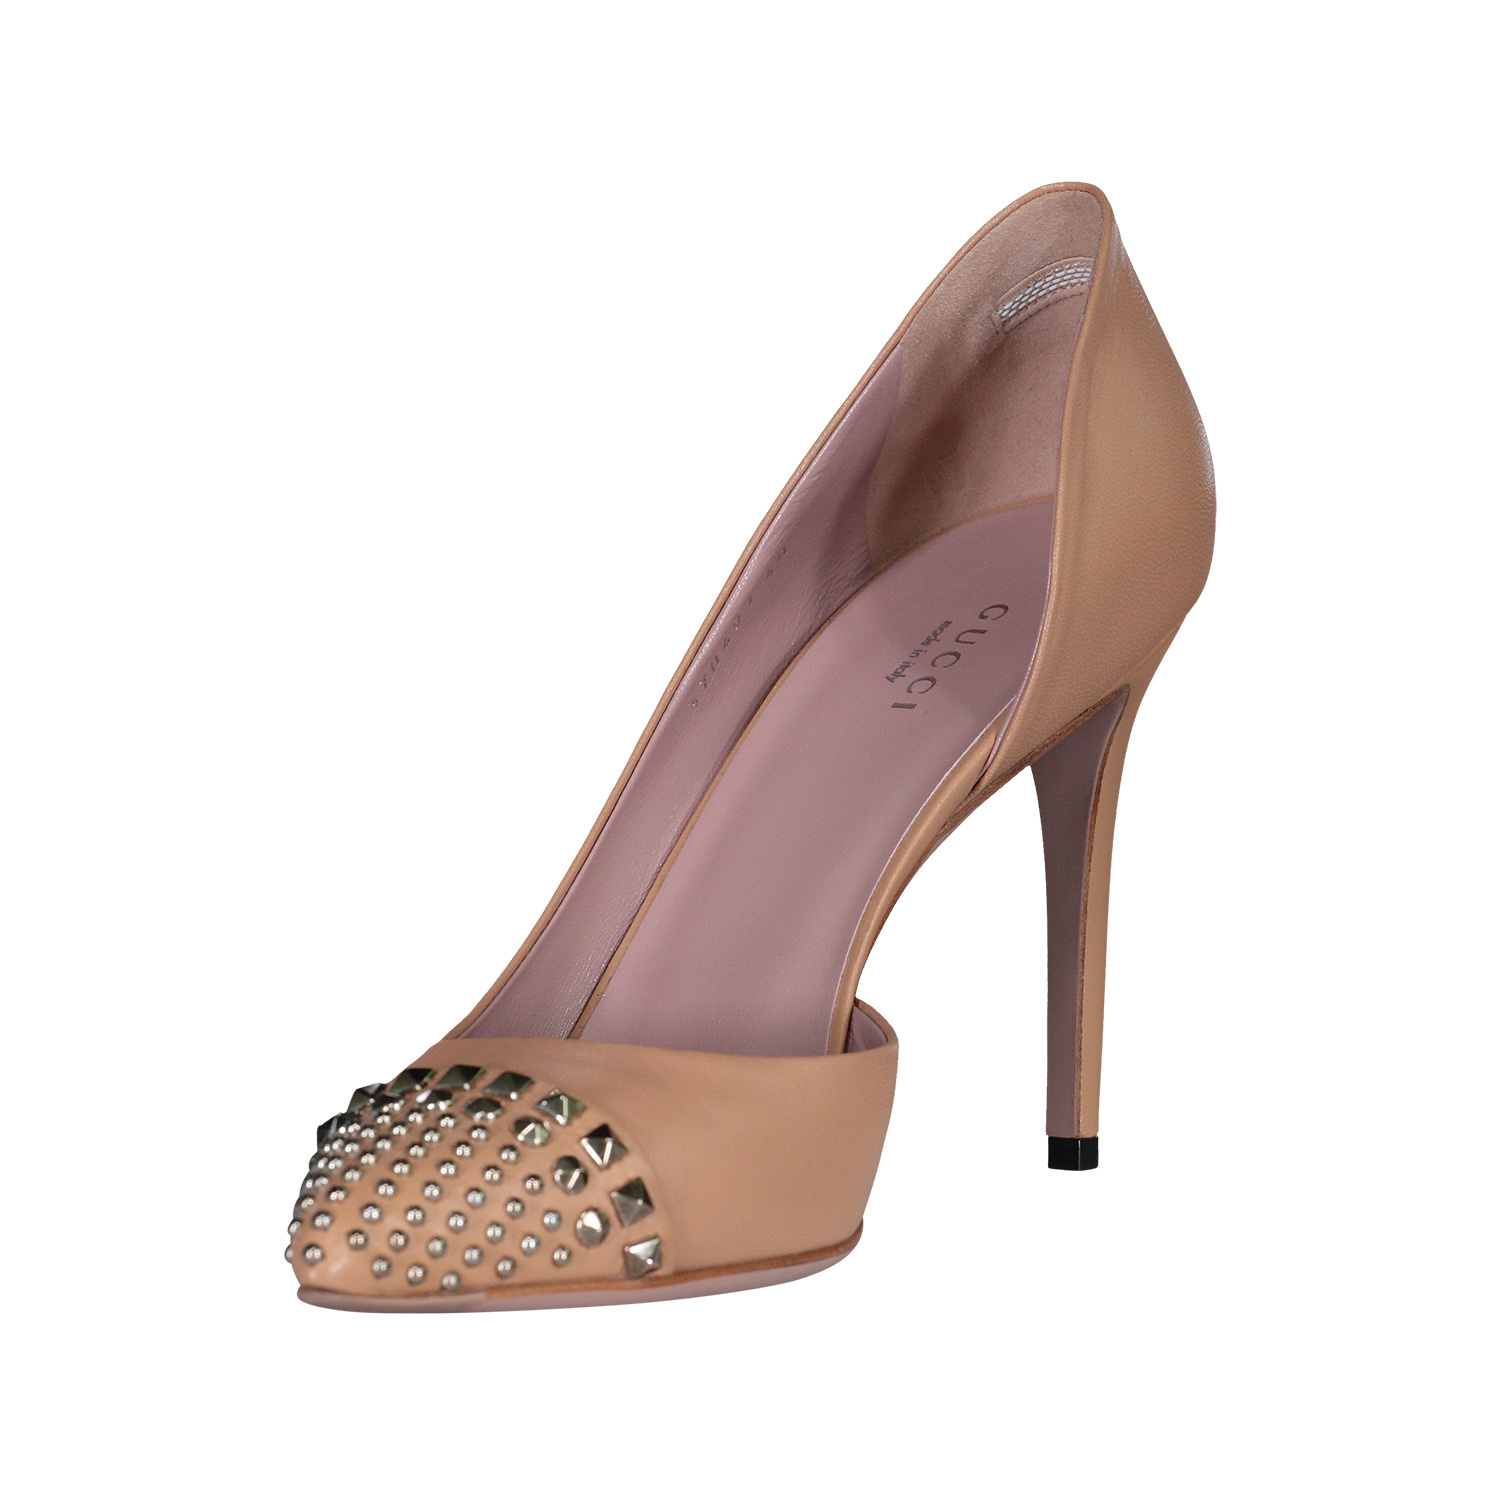 Gucci N/A - Gucci Nude Leather Studded Malaga Kid D'Orsay Pumps